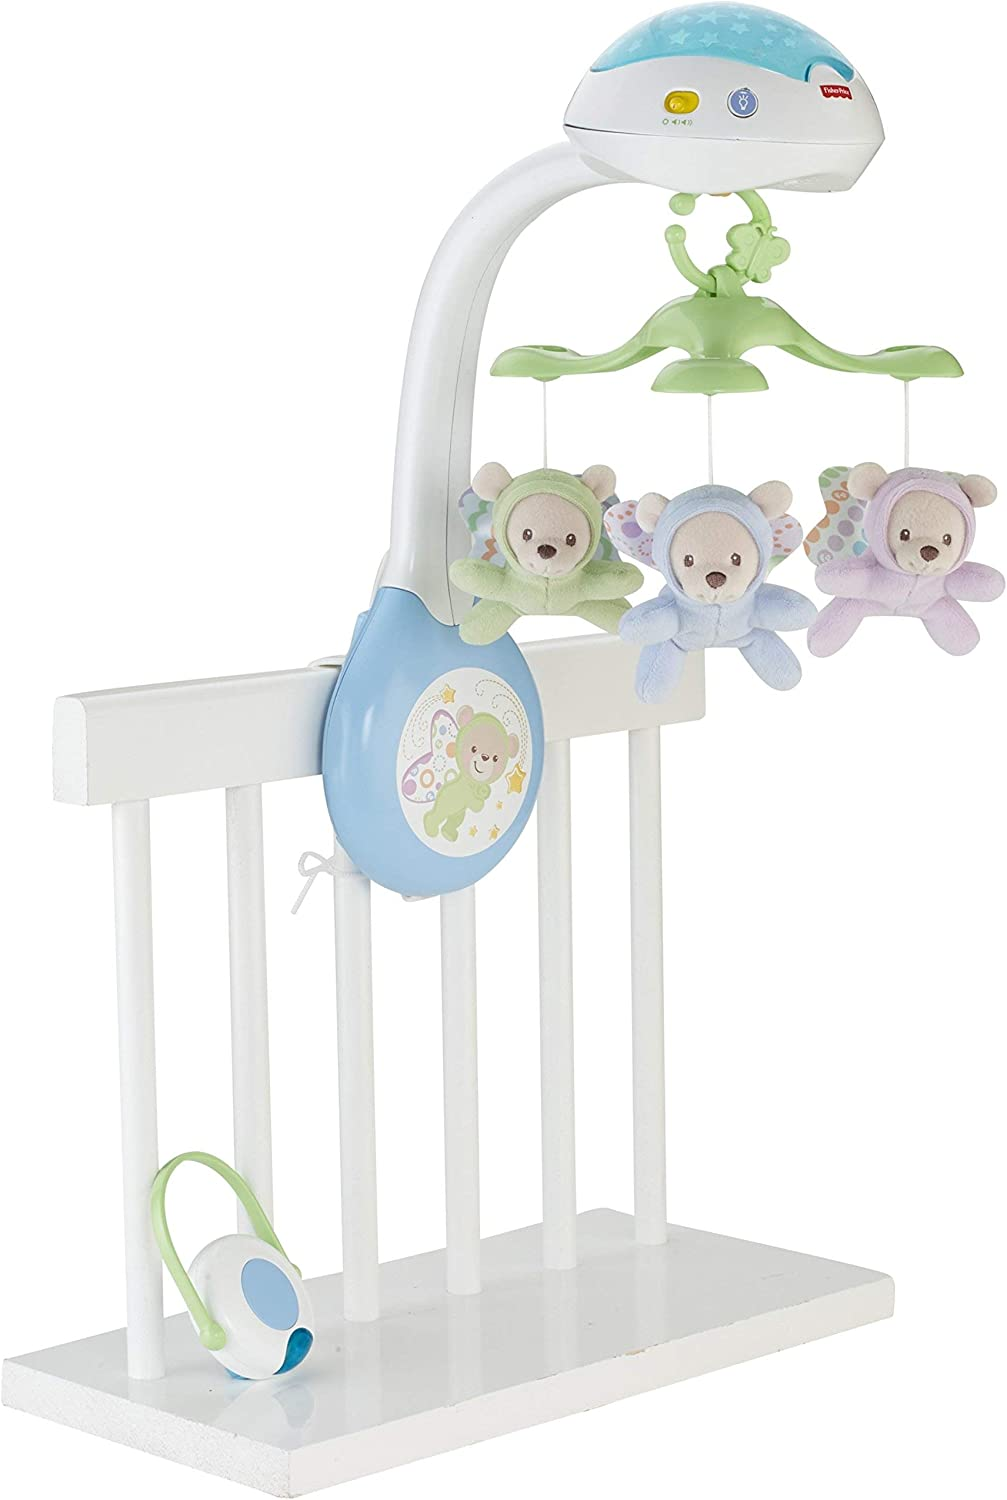 Fisher-Price- Butterfly Dreams 3-in-1 Projection Mobile Polar Móvil con ositos, juguetes bebe, Multicolor (Mattel CDN41)